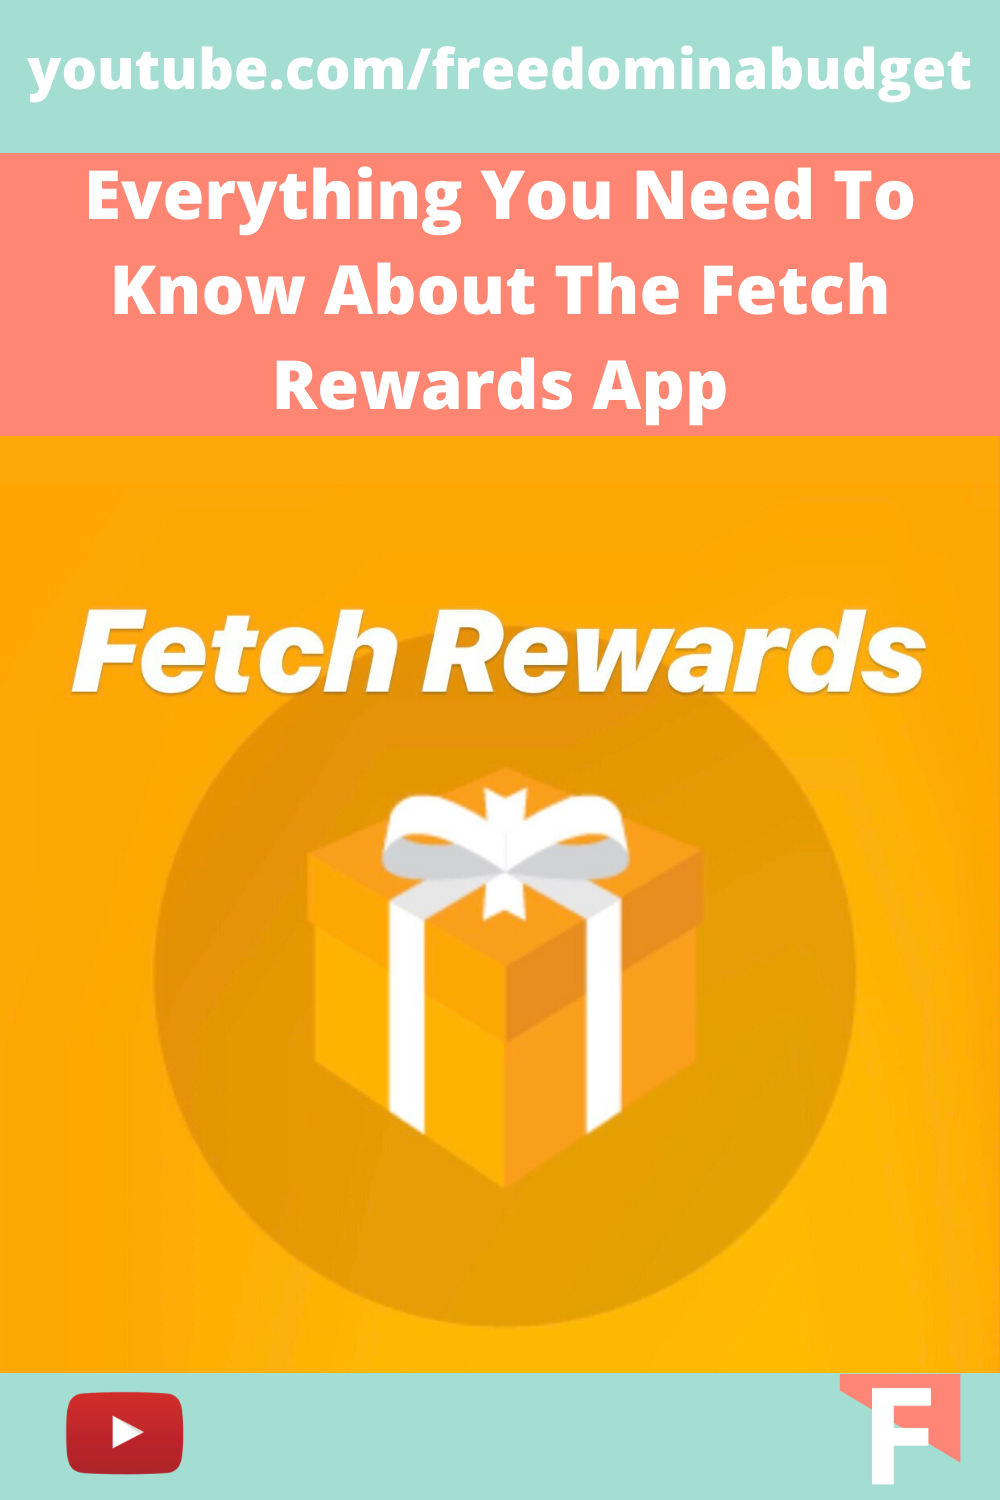 Everything You Need To Know About The Fetch Rewards App in